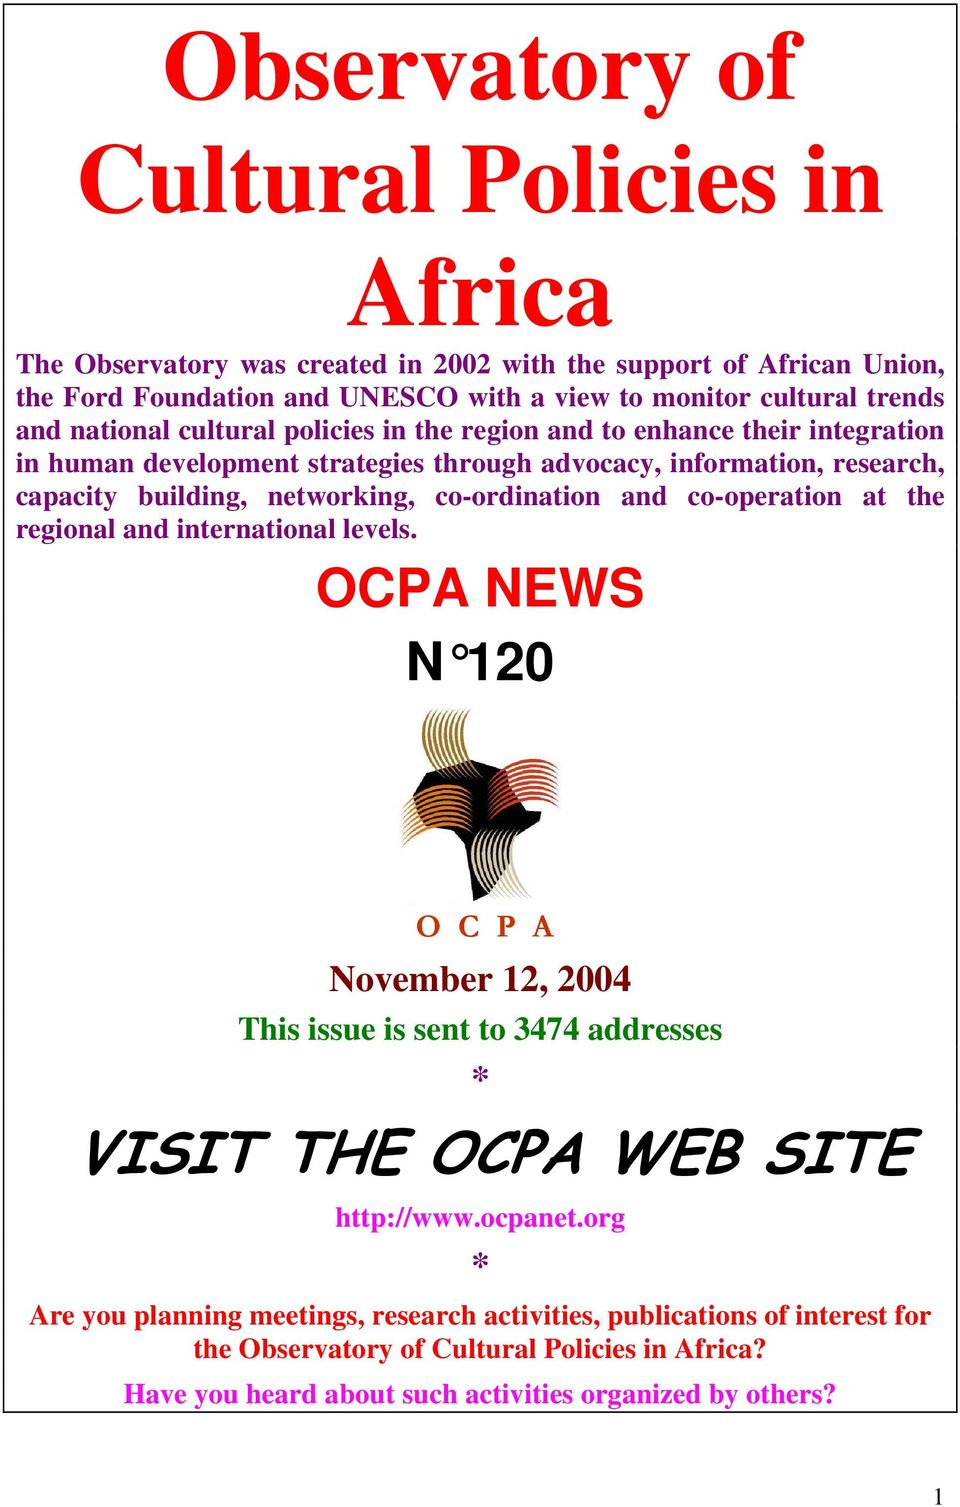 co-ordination and co-operation at the regional and international levels. OCPA NEWS N 120 O C P A November 12, 2004 This issue is sent to 3474 addresses * VISIT THE OCPA WEB SITE http://www.